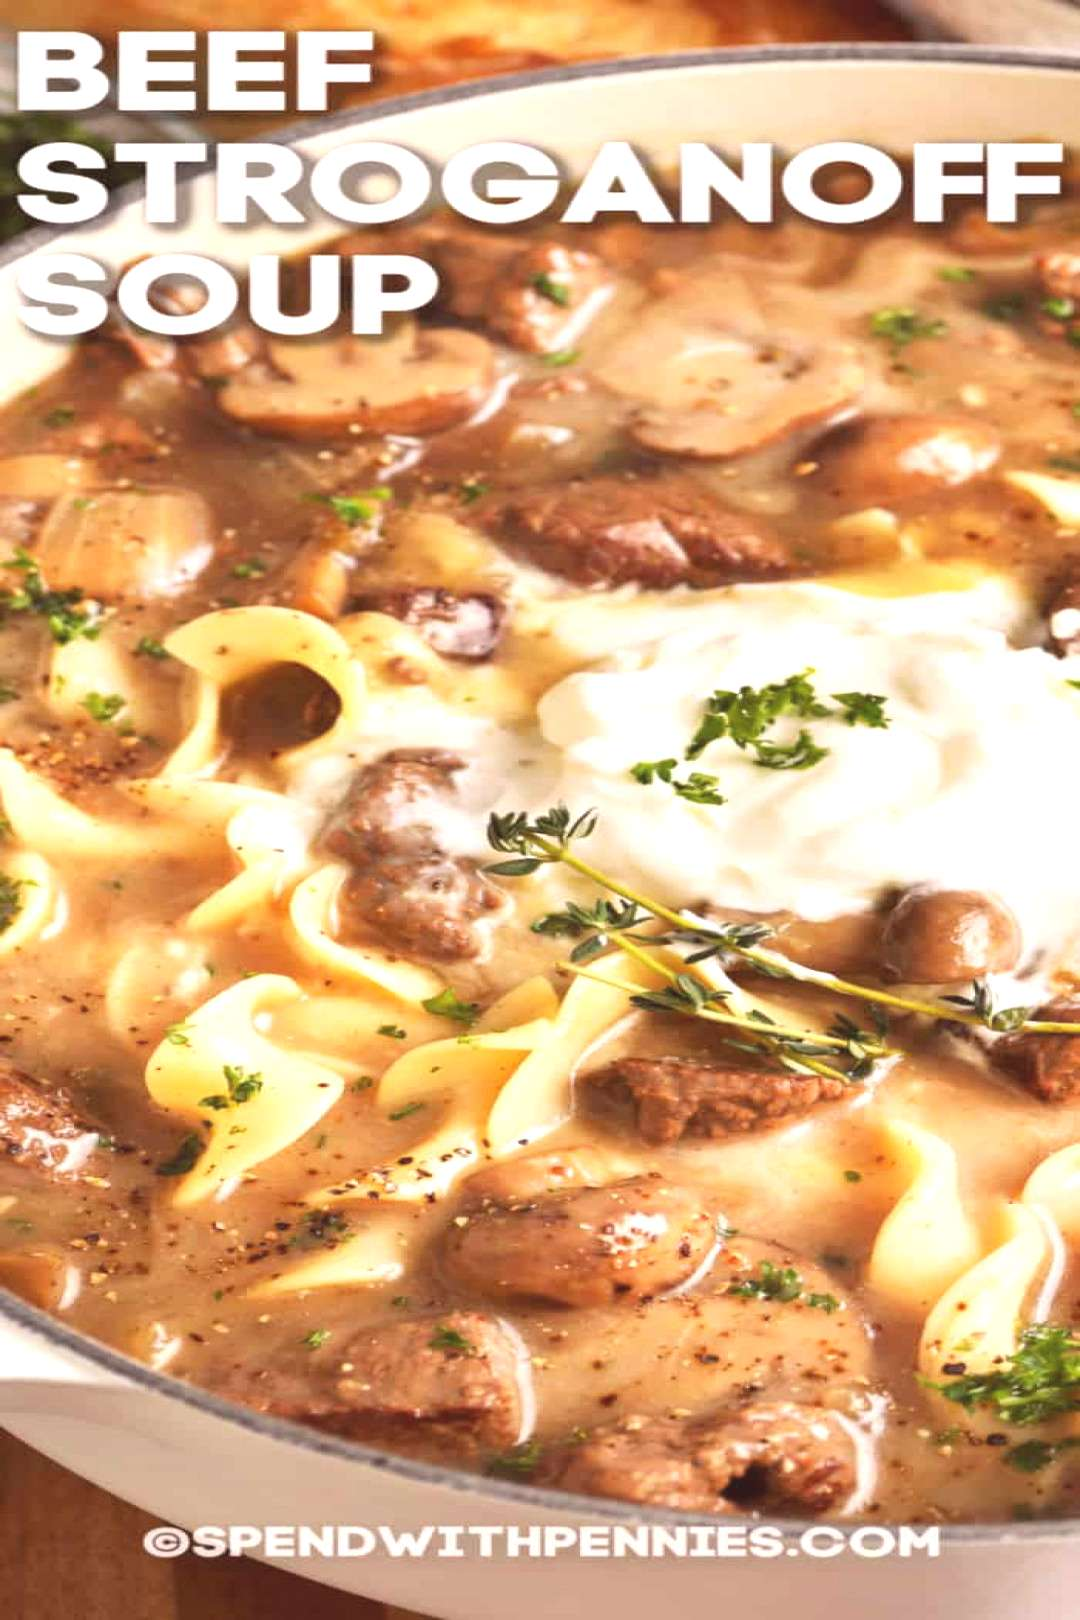 Beef Stroganoff Soup Slow Cooker or Stovetop! - Spend With Pennies#beef